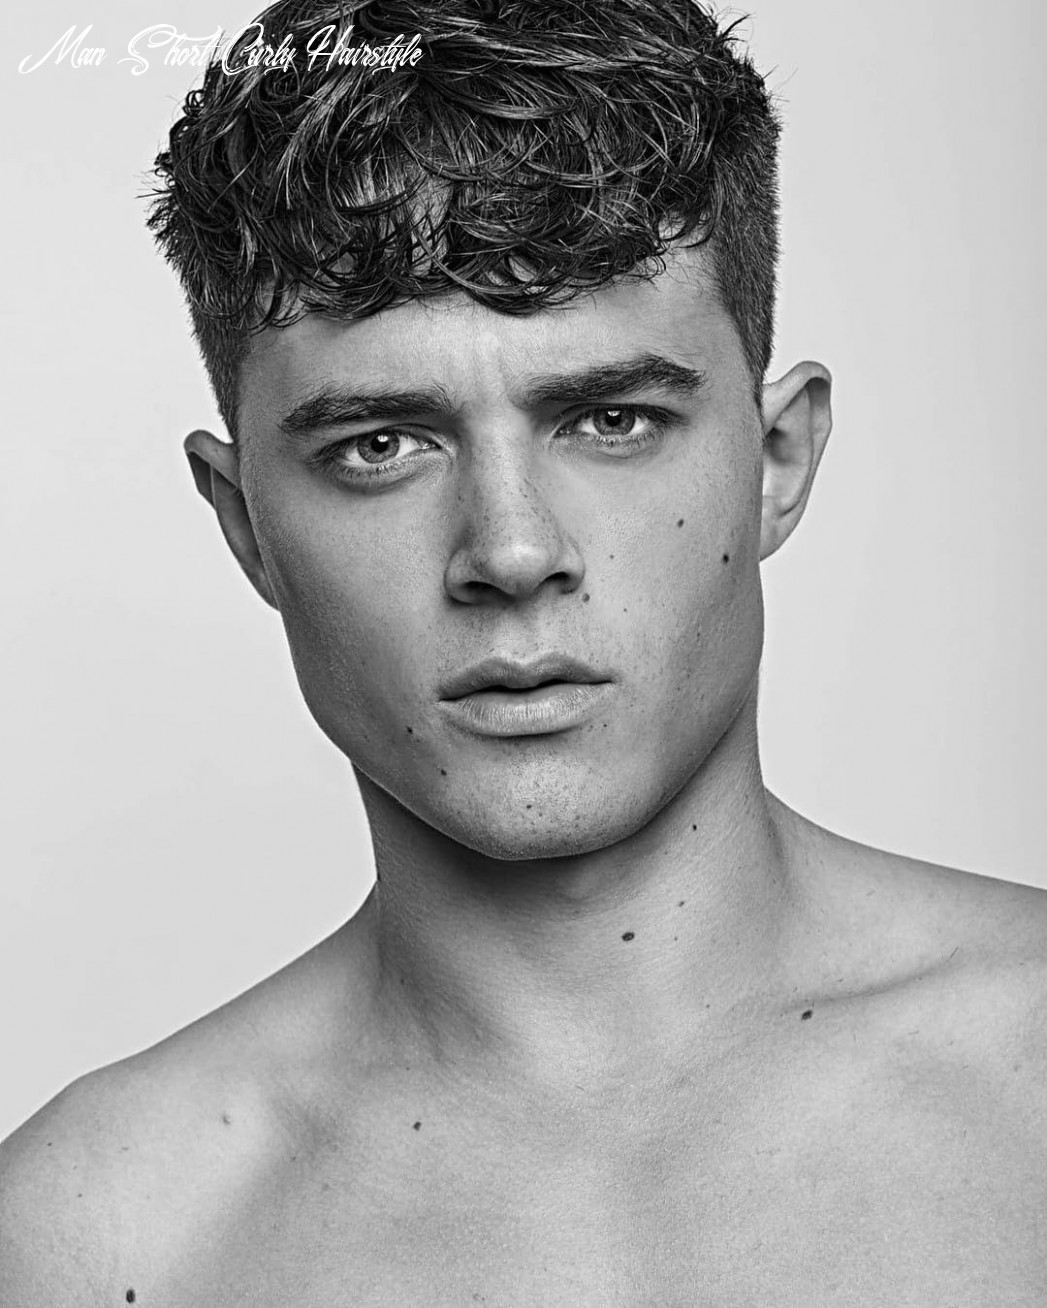 10 curly hair hairstyles for men (10 update) man short curly hairstyle